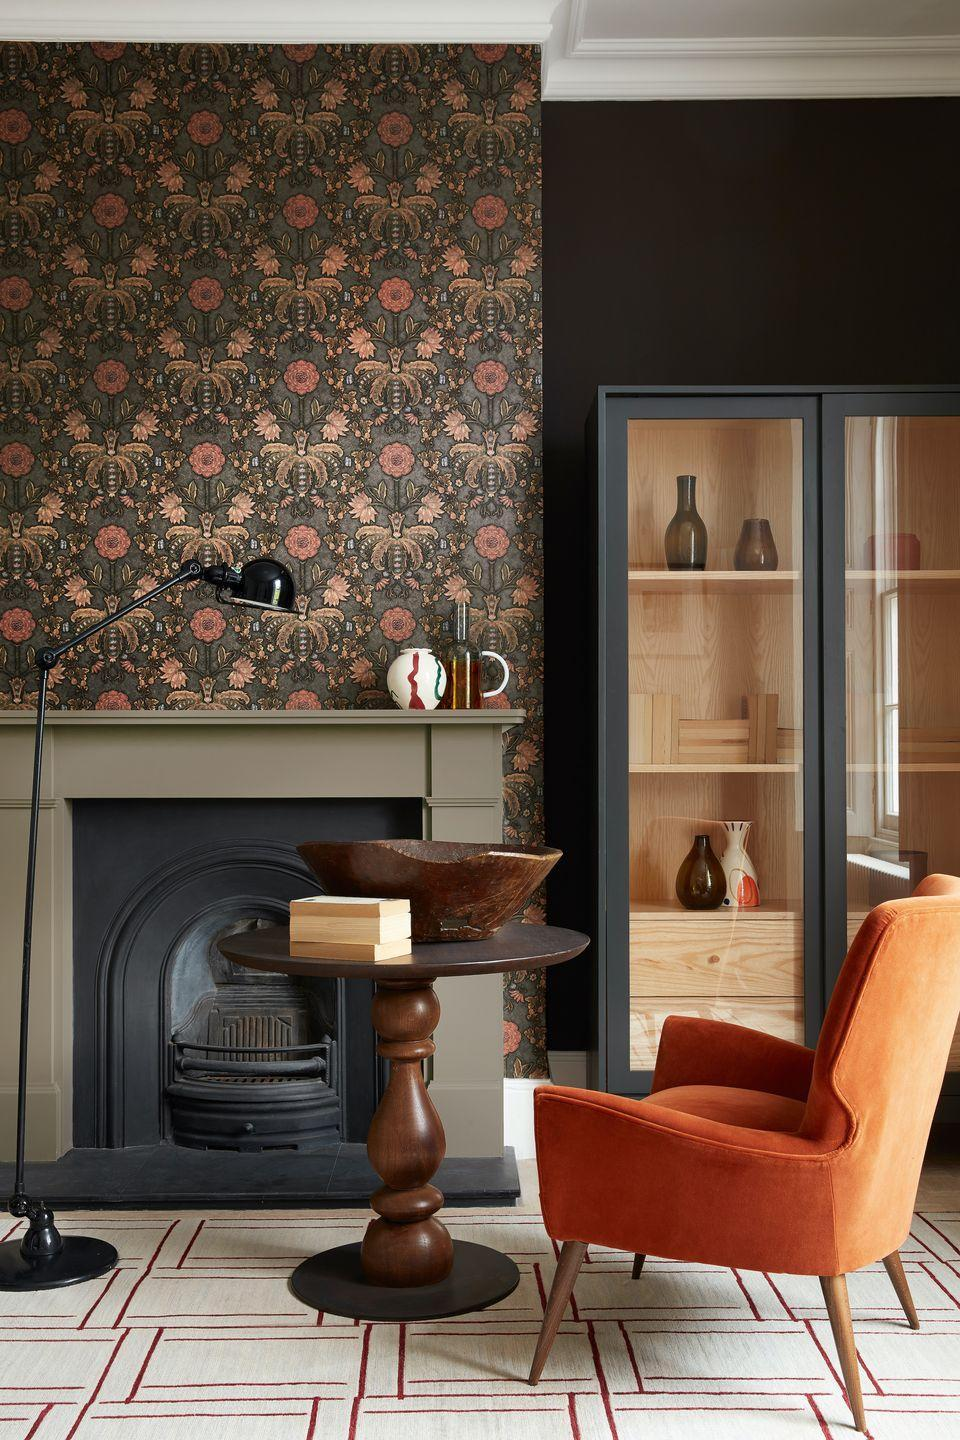 """<p>Don't be afraid to go dark in a living room – you can tie the scheme together with bold, punchy accents, like this burnt orange armchair. Wooden furniture grounds the scheme.<br></p><p>Pictured: London Wallpapers, New Bond Street - Hide, <a href=""""https://www.littlegreene.com/new-bond-street-hide"""" rel=""""nofollow noopener"""" target=""""_blank"""" data-ylk=""""slk:Little Greene"""" class=""""link rapid-noclick-resp"""">Little Greene</a></p>"""